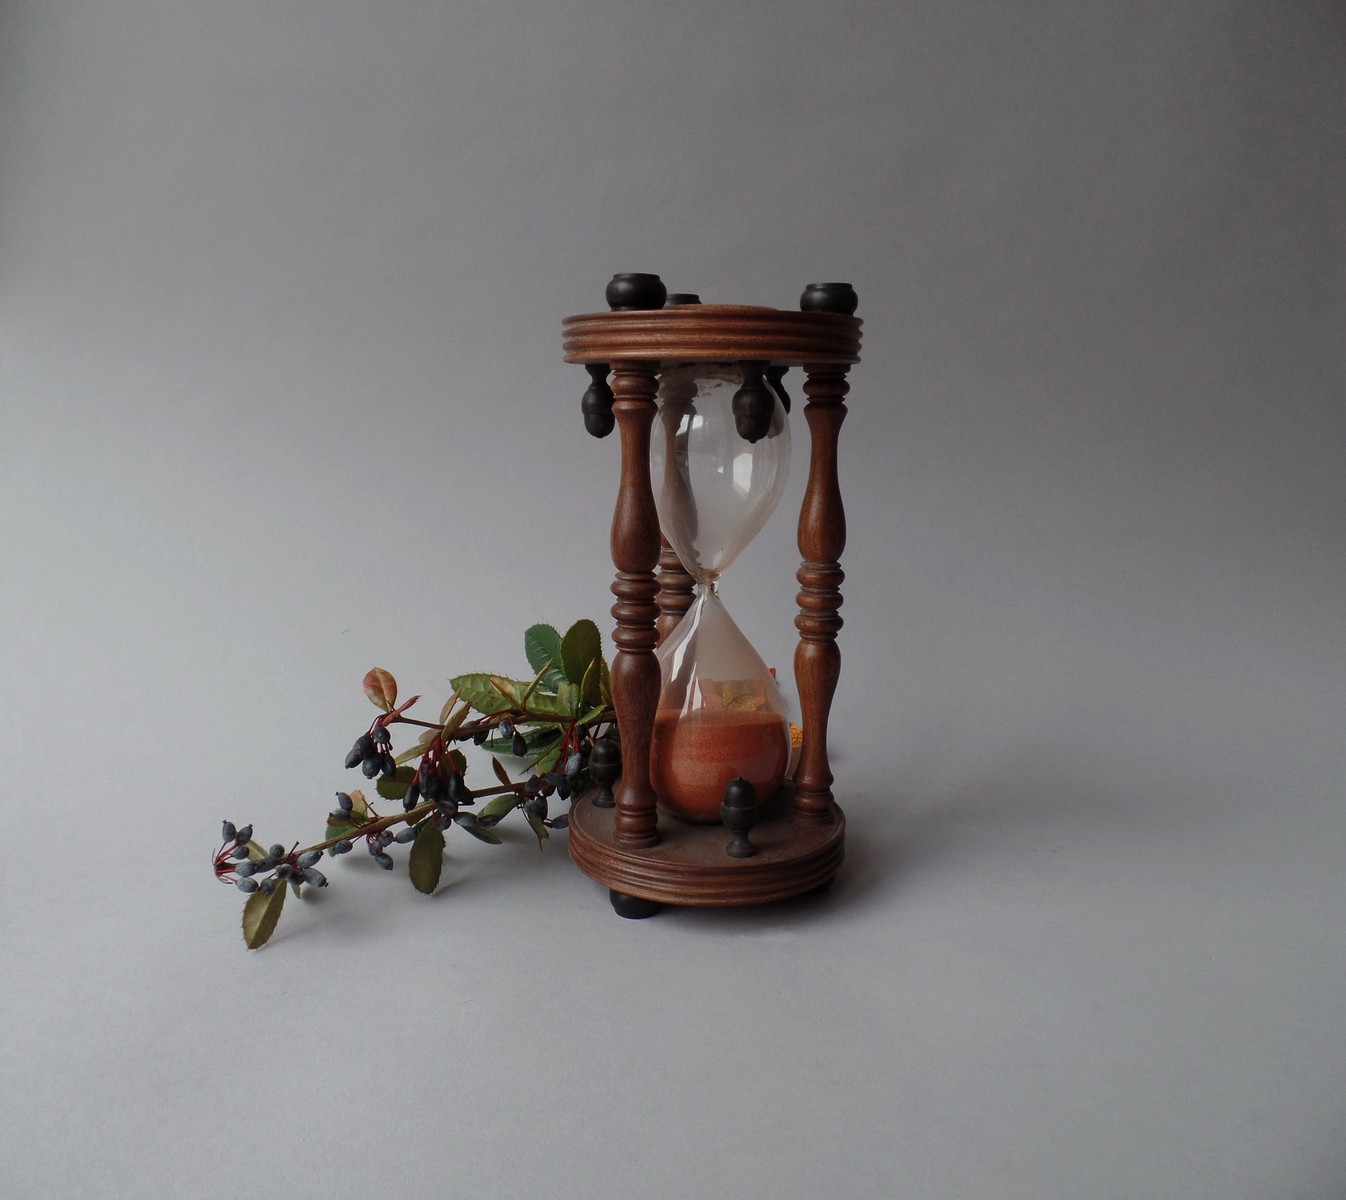 ANTIQUE 19TH CENTURY HOURGLASS